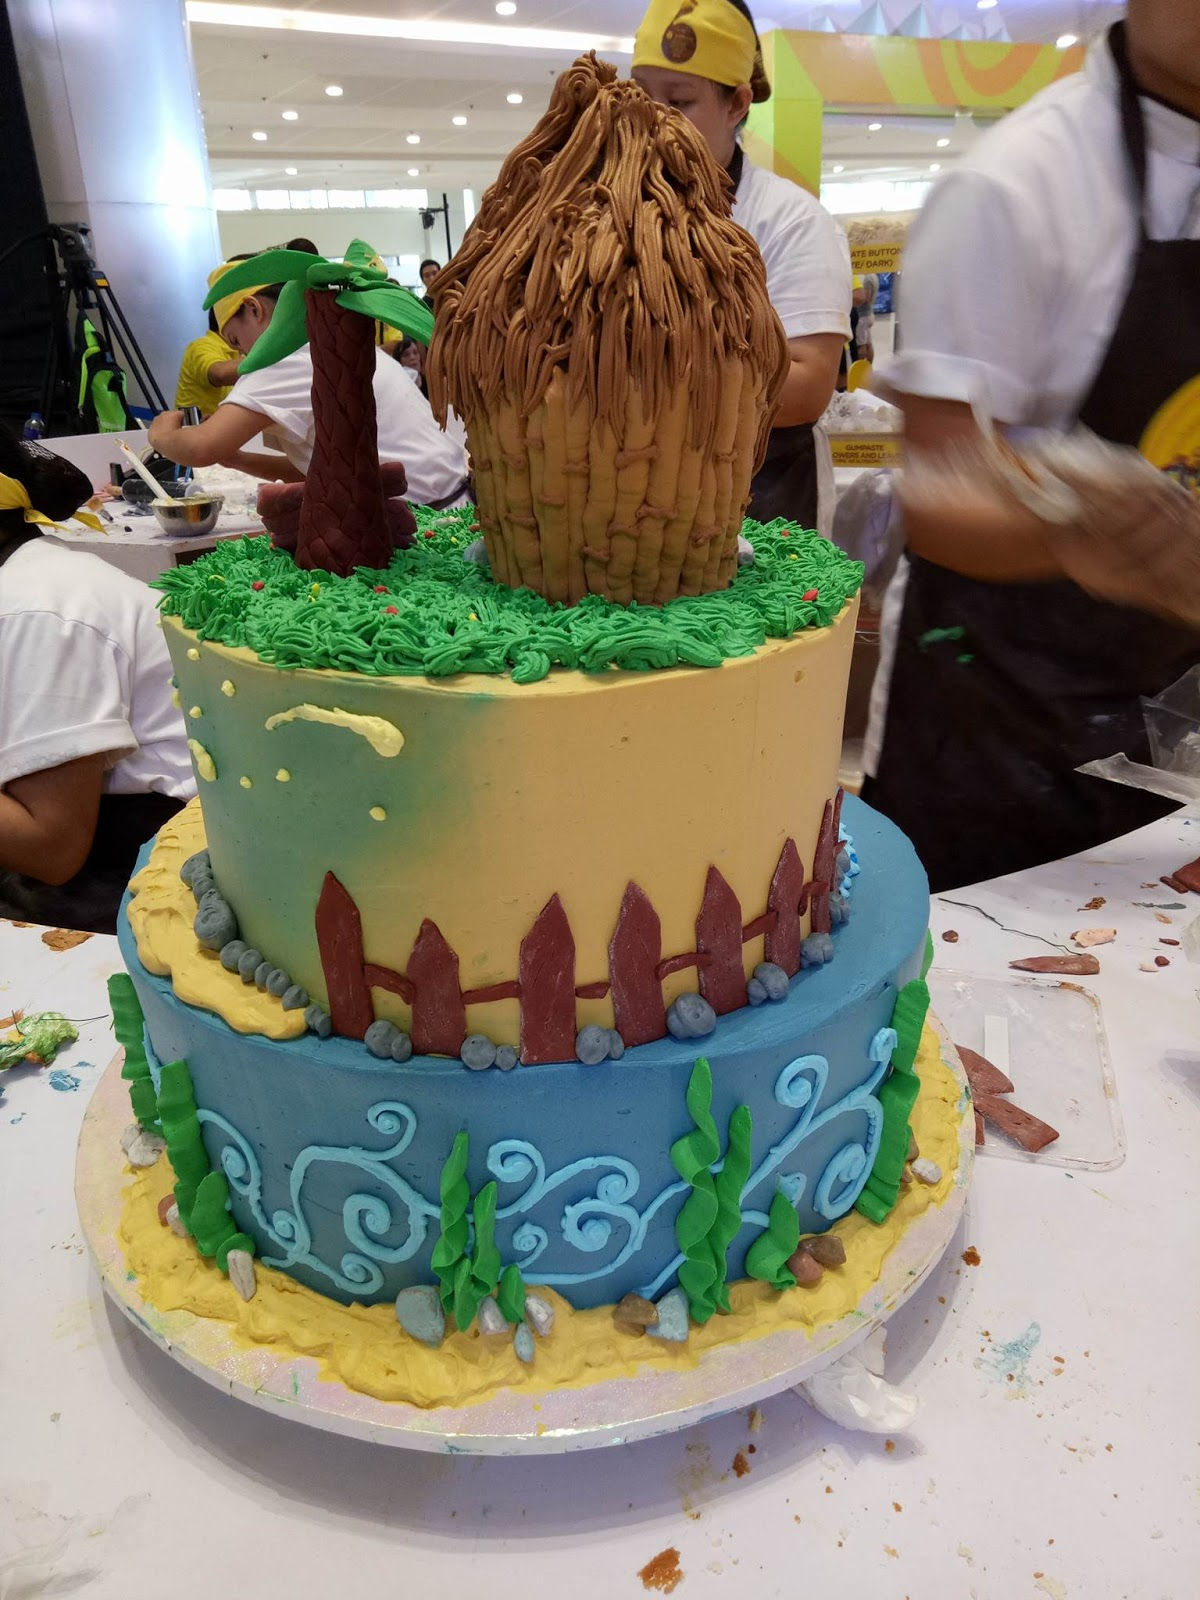 Timeless designs 12th goldilocks intercollegiate cake decorating a goldilocks decorate your cake dyc corner amazing cake displays and a chance to see goldilocks endorser judy ann santos agoncillo who graced the m4hsunfo